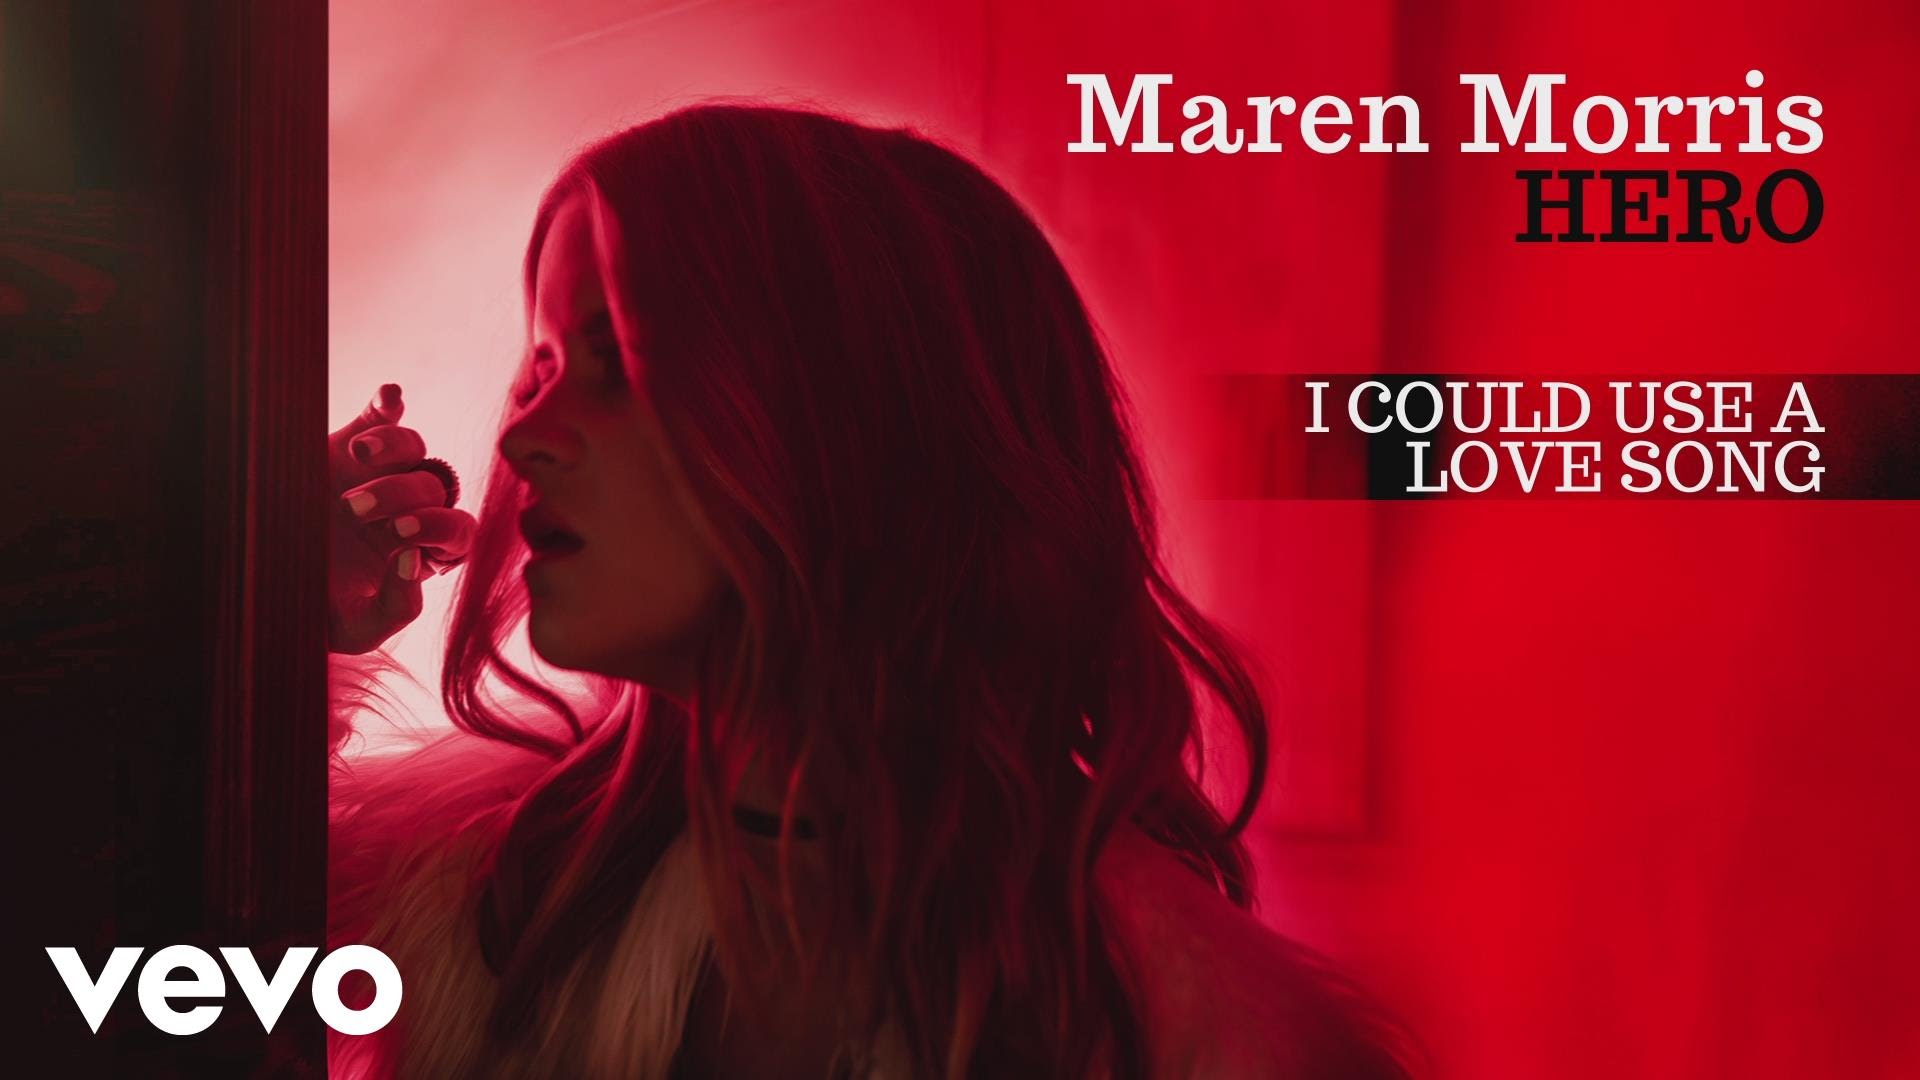 Maren Morris praises Sheryl Crow, teases 'different' second album